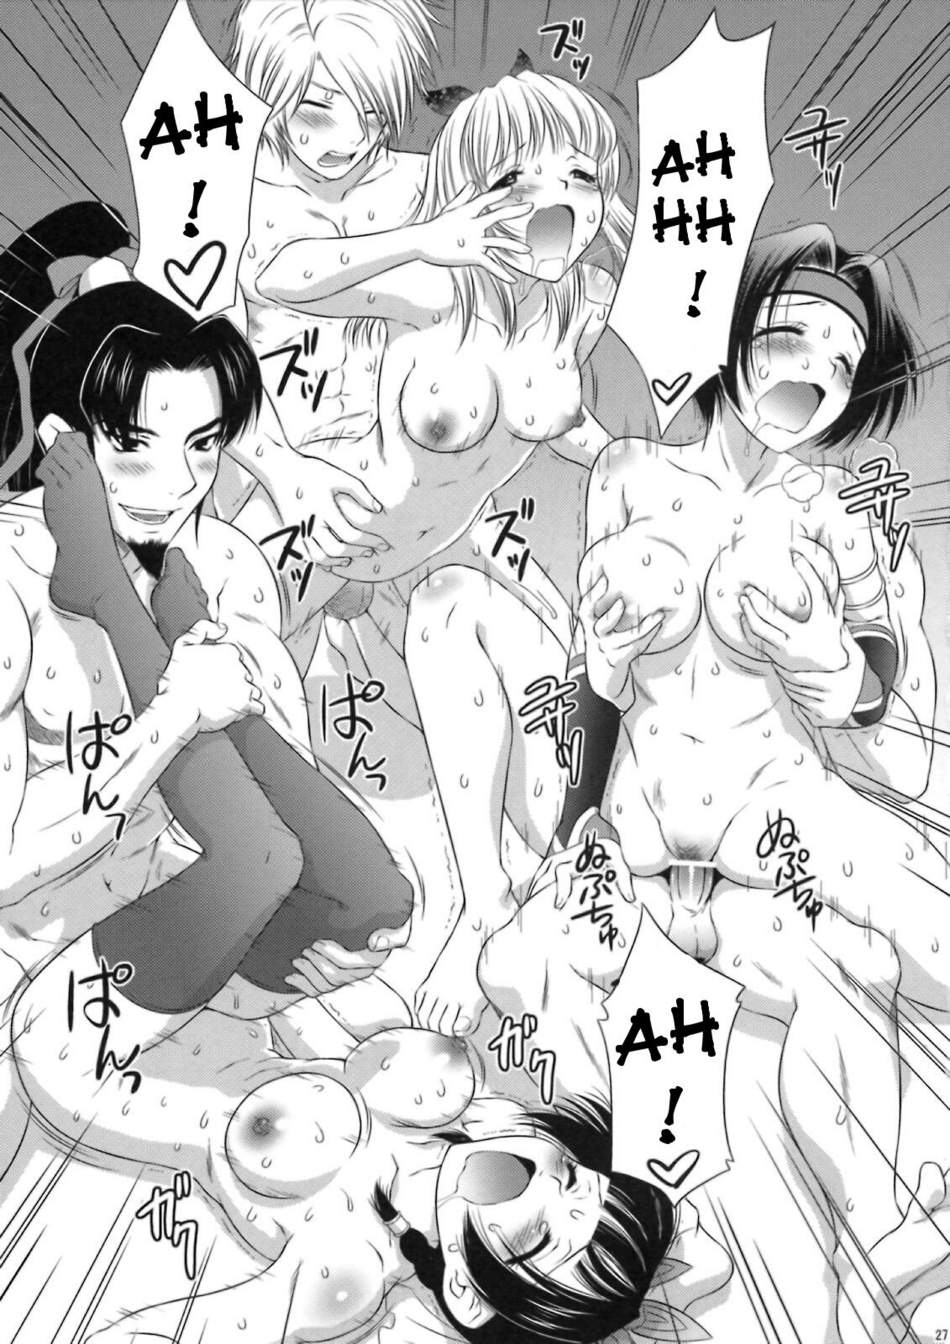 Warrior orochi porn hentai in image xxx videos